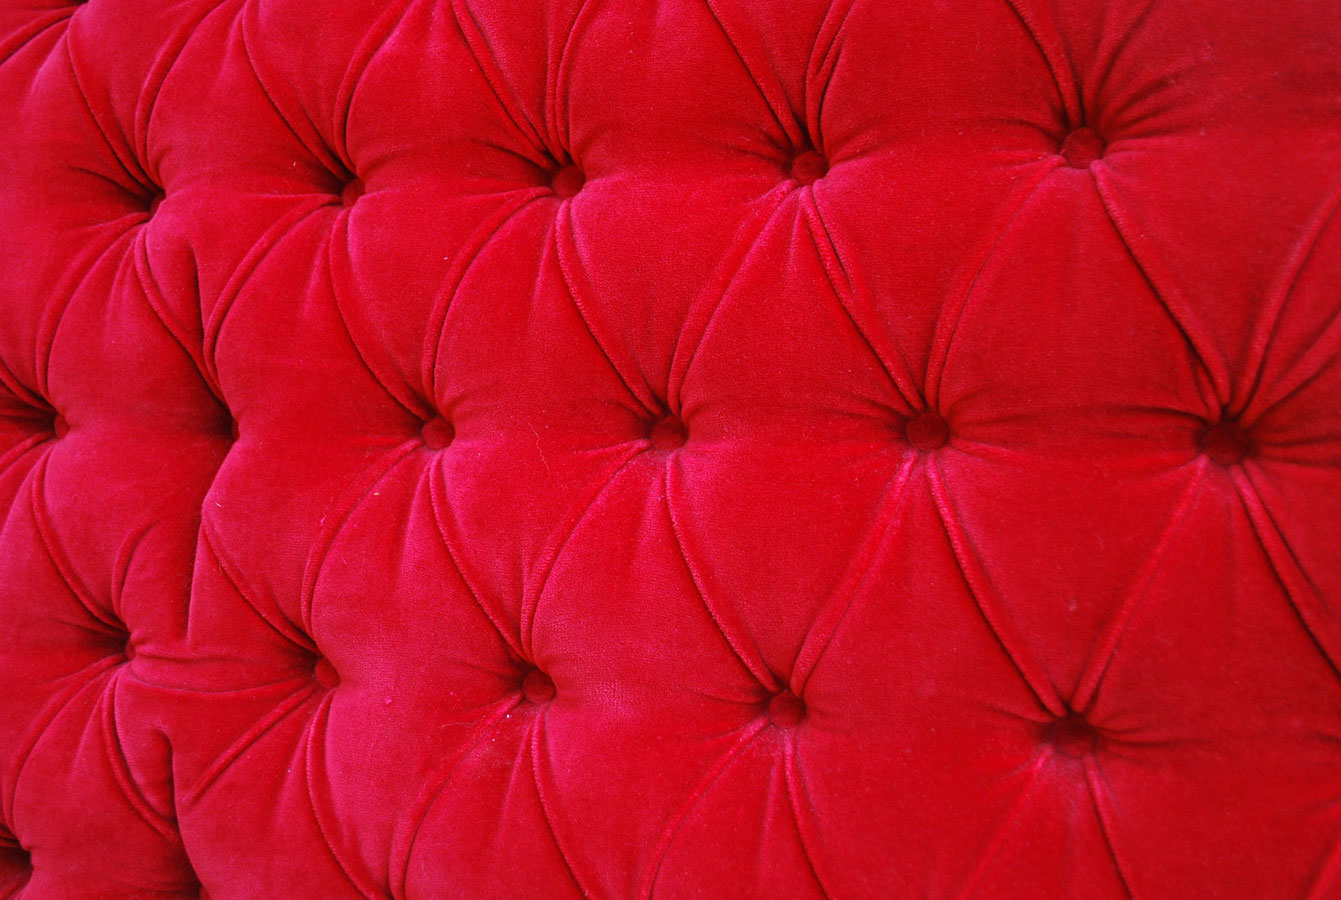 junkfunk vintage red tufted king size headboard - beautiful red velvet king headboard in amazing shape with one area wherethe fabric is torned but isn't noticeable because its in the crease